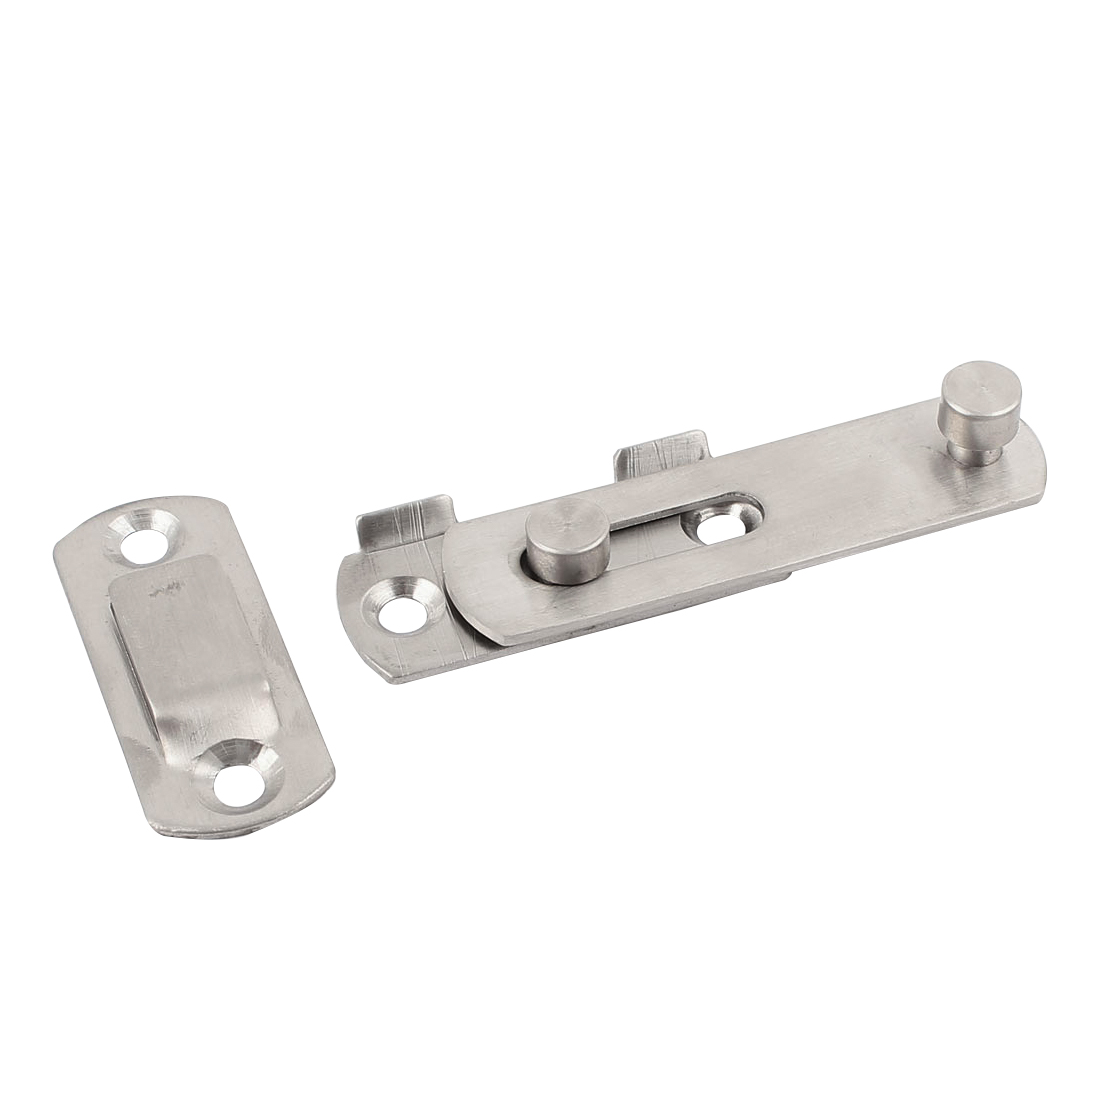 Home Office Interior Security Metal Safety Door Chain Restrictor Lock Guard Cabinet Latch